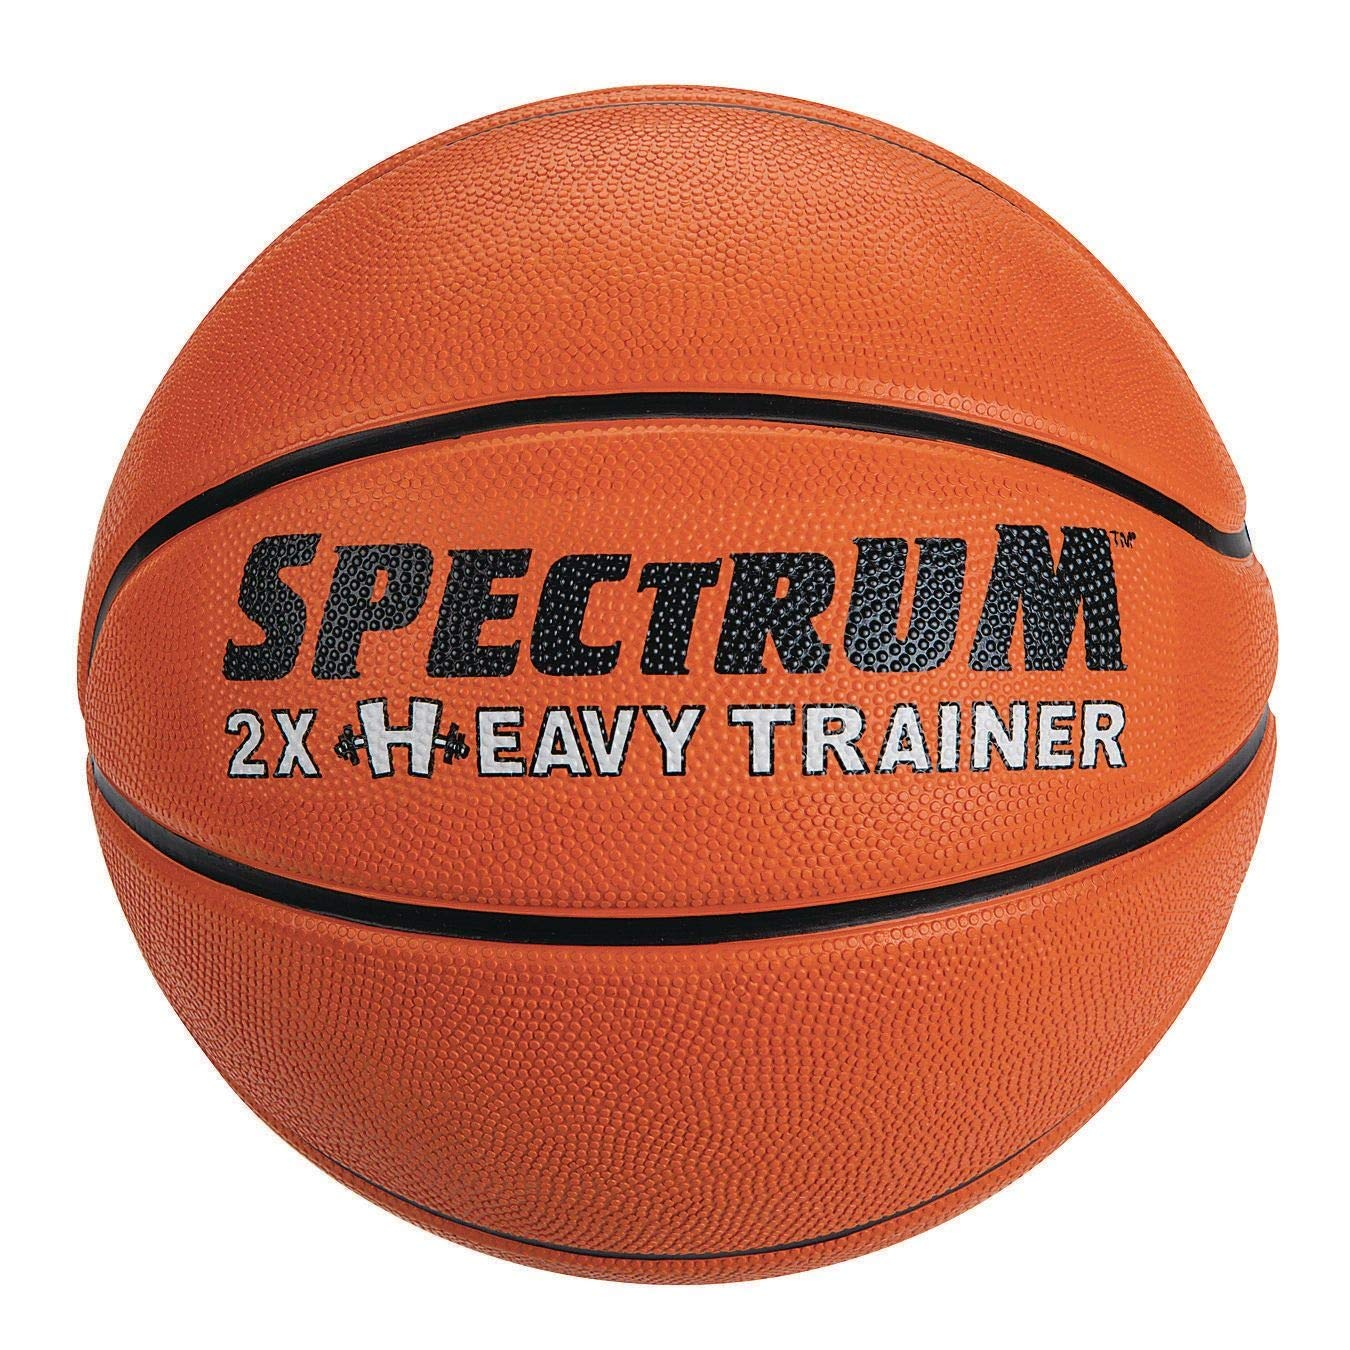 security SS Worldwide Spectrum 2X Heavy Basketball Max 79% OFF Training